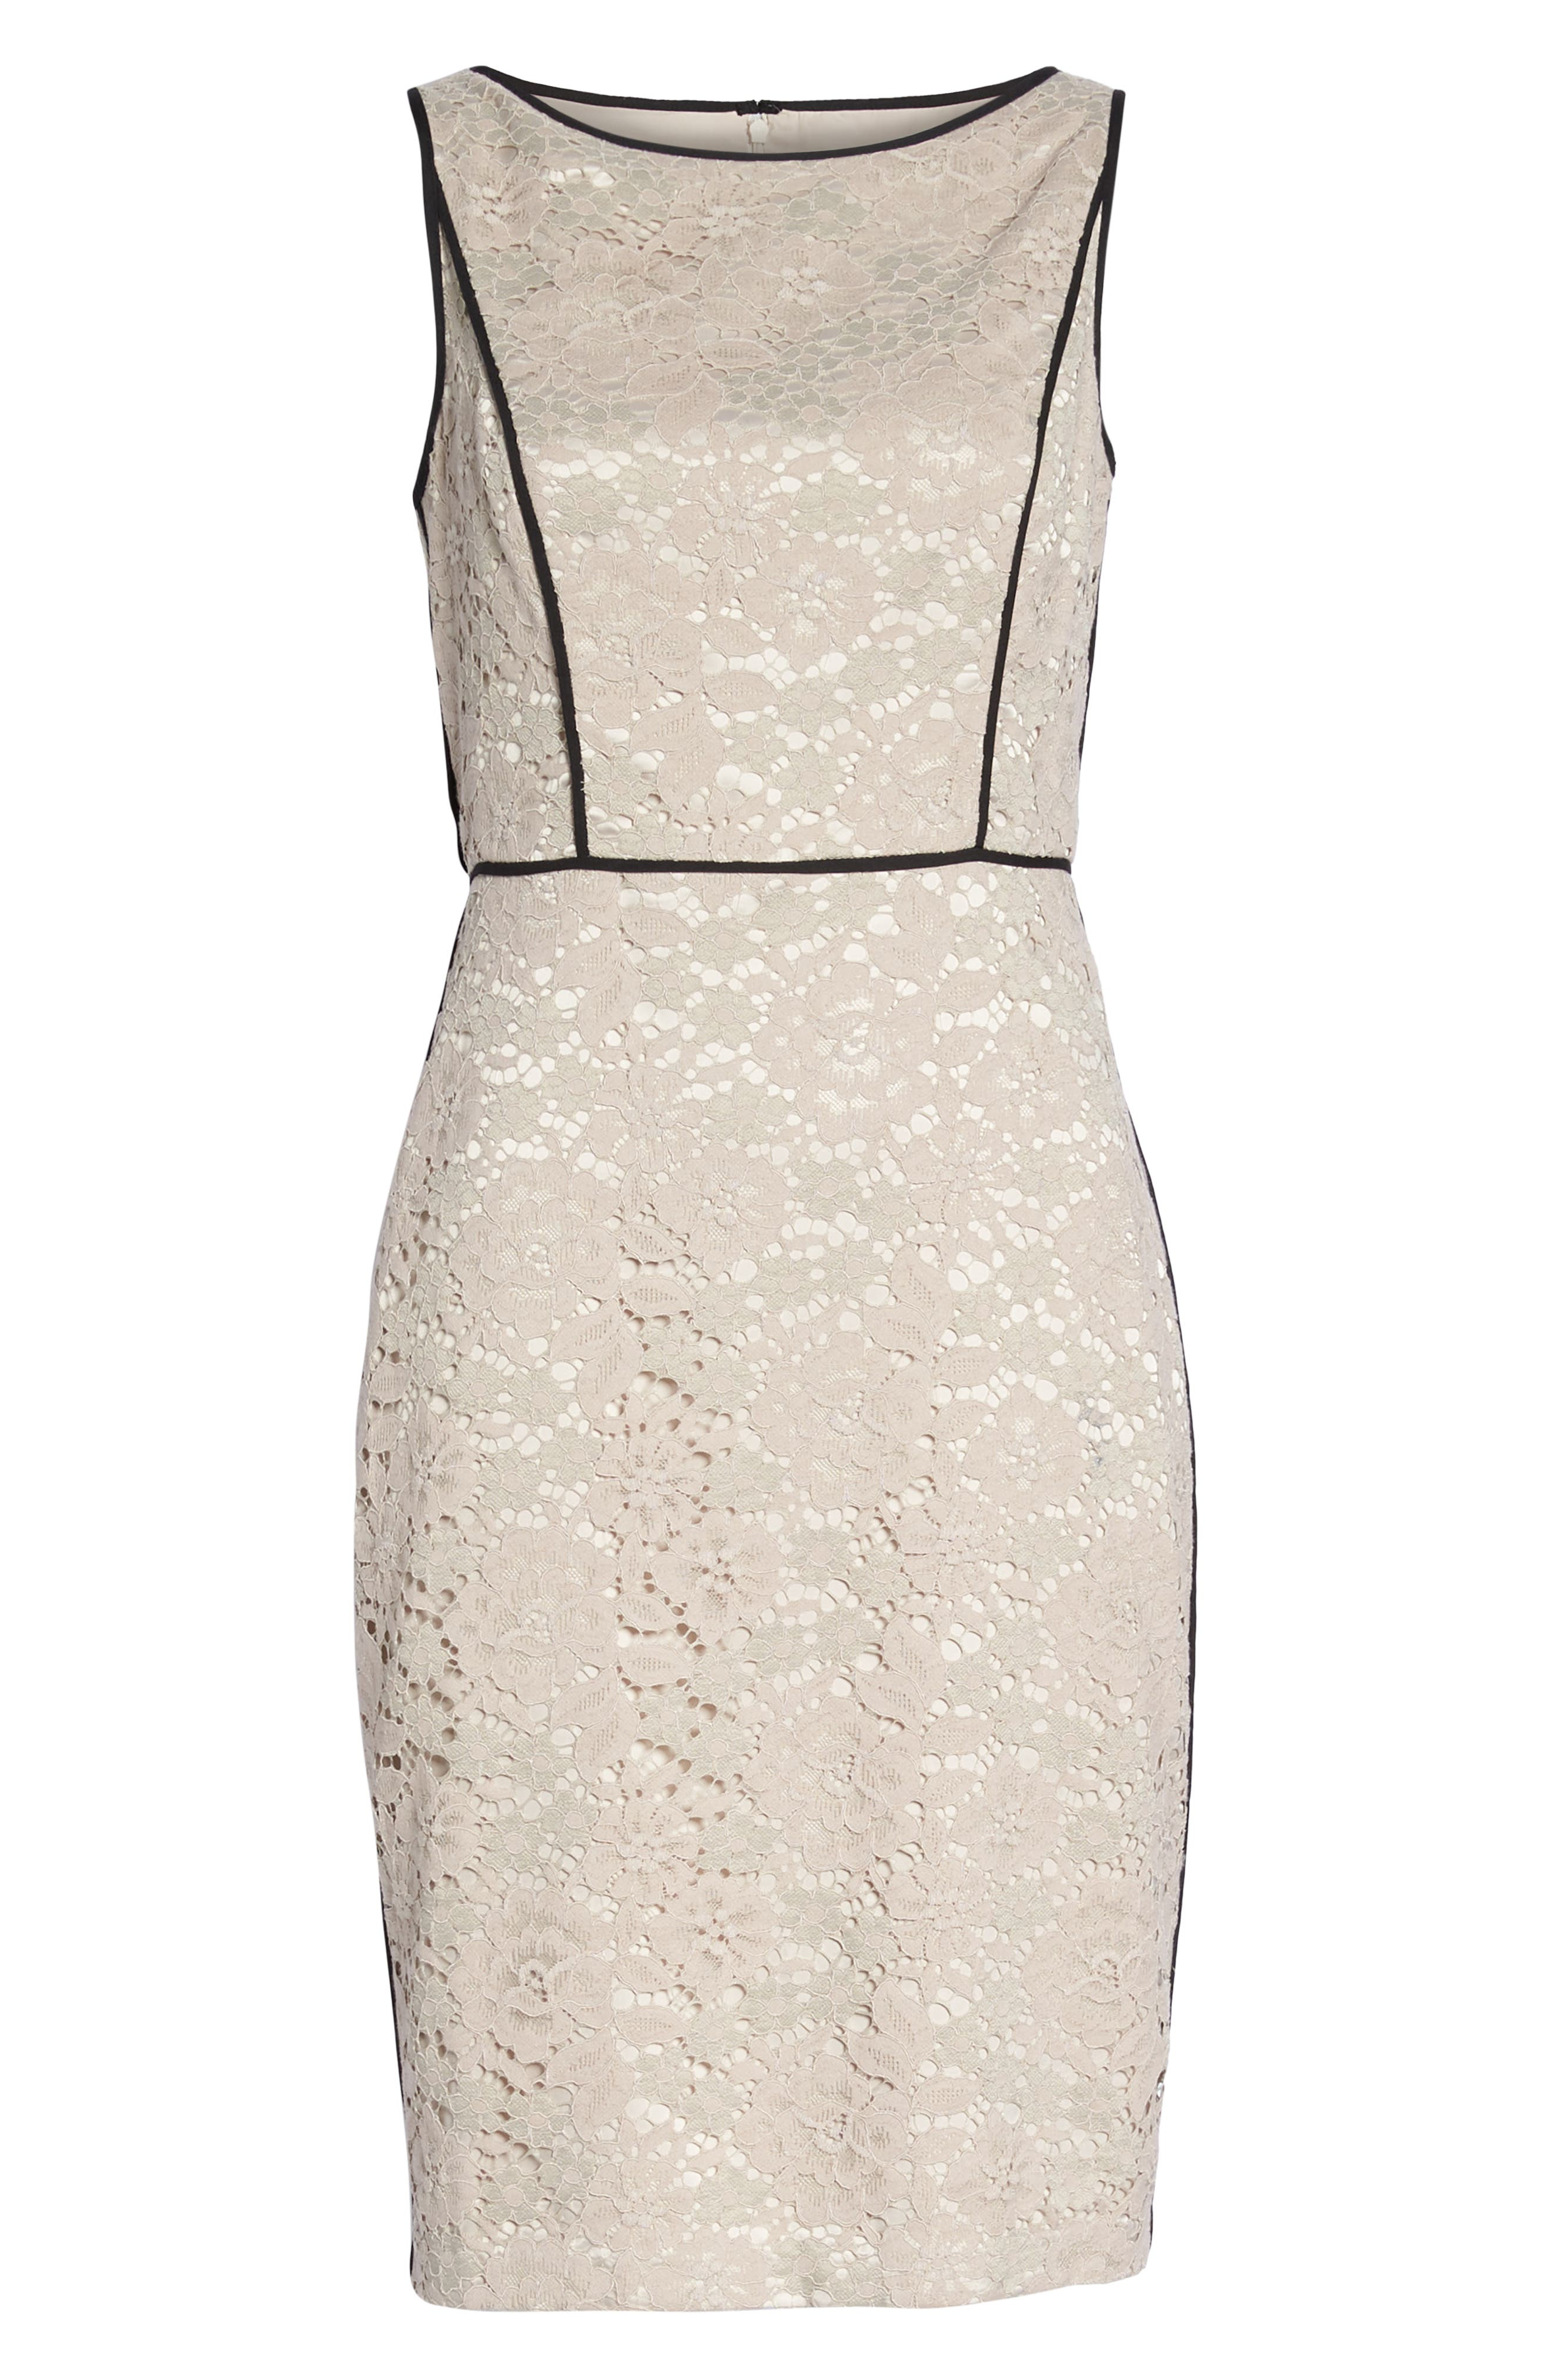 Piped Lace Sheath Dress,                             Alternate thumbnail 7, color,                             256